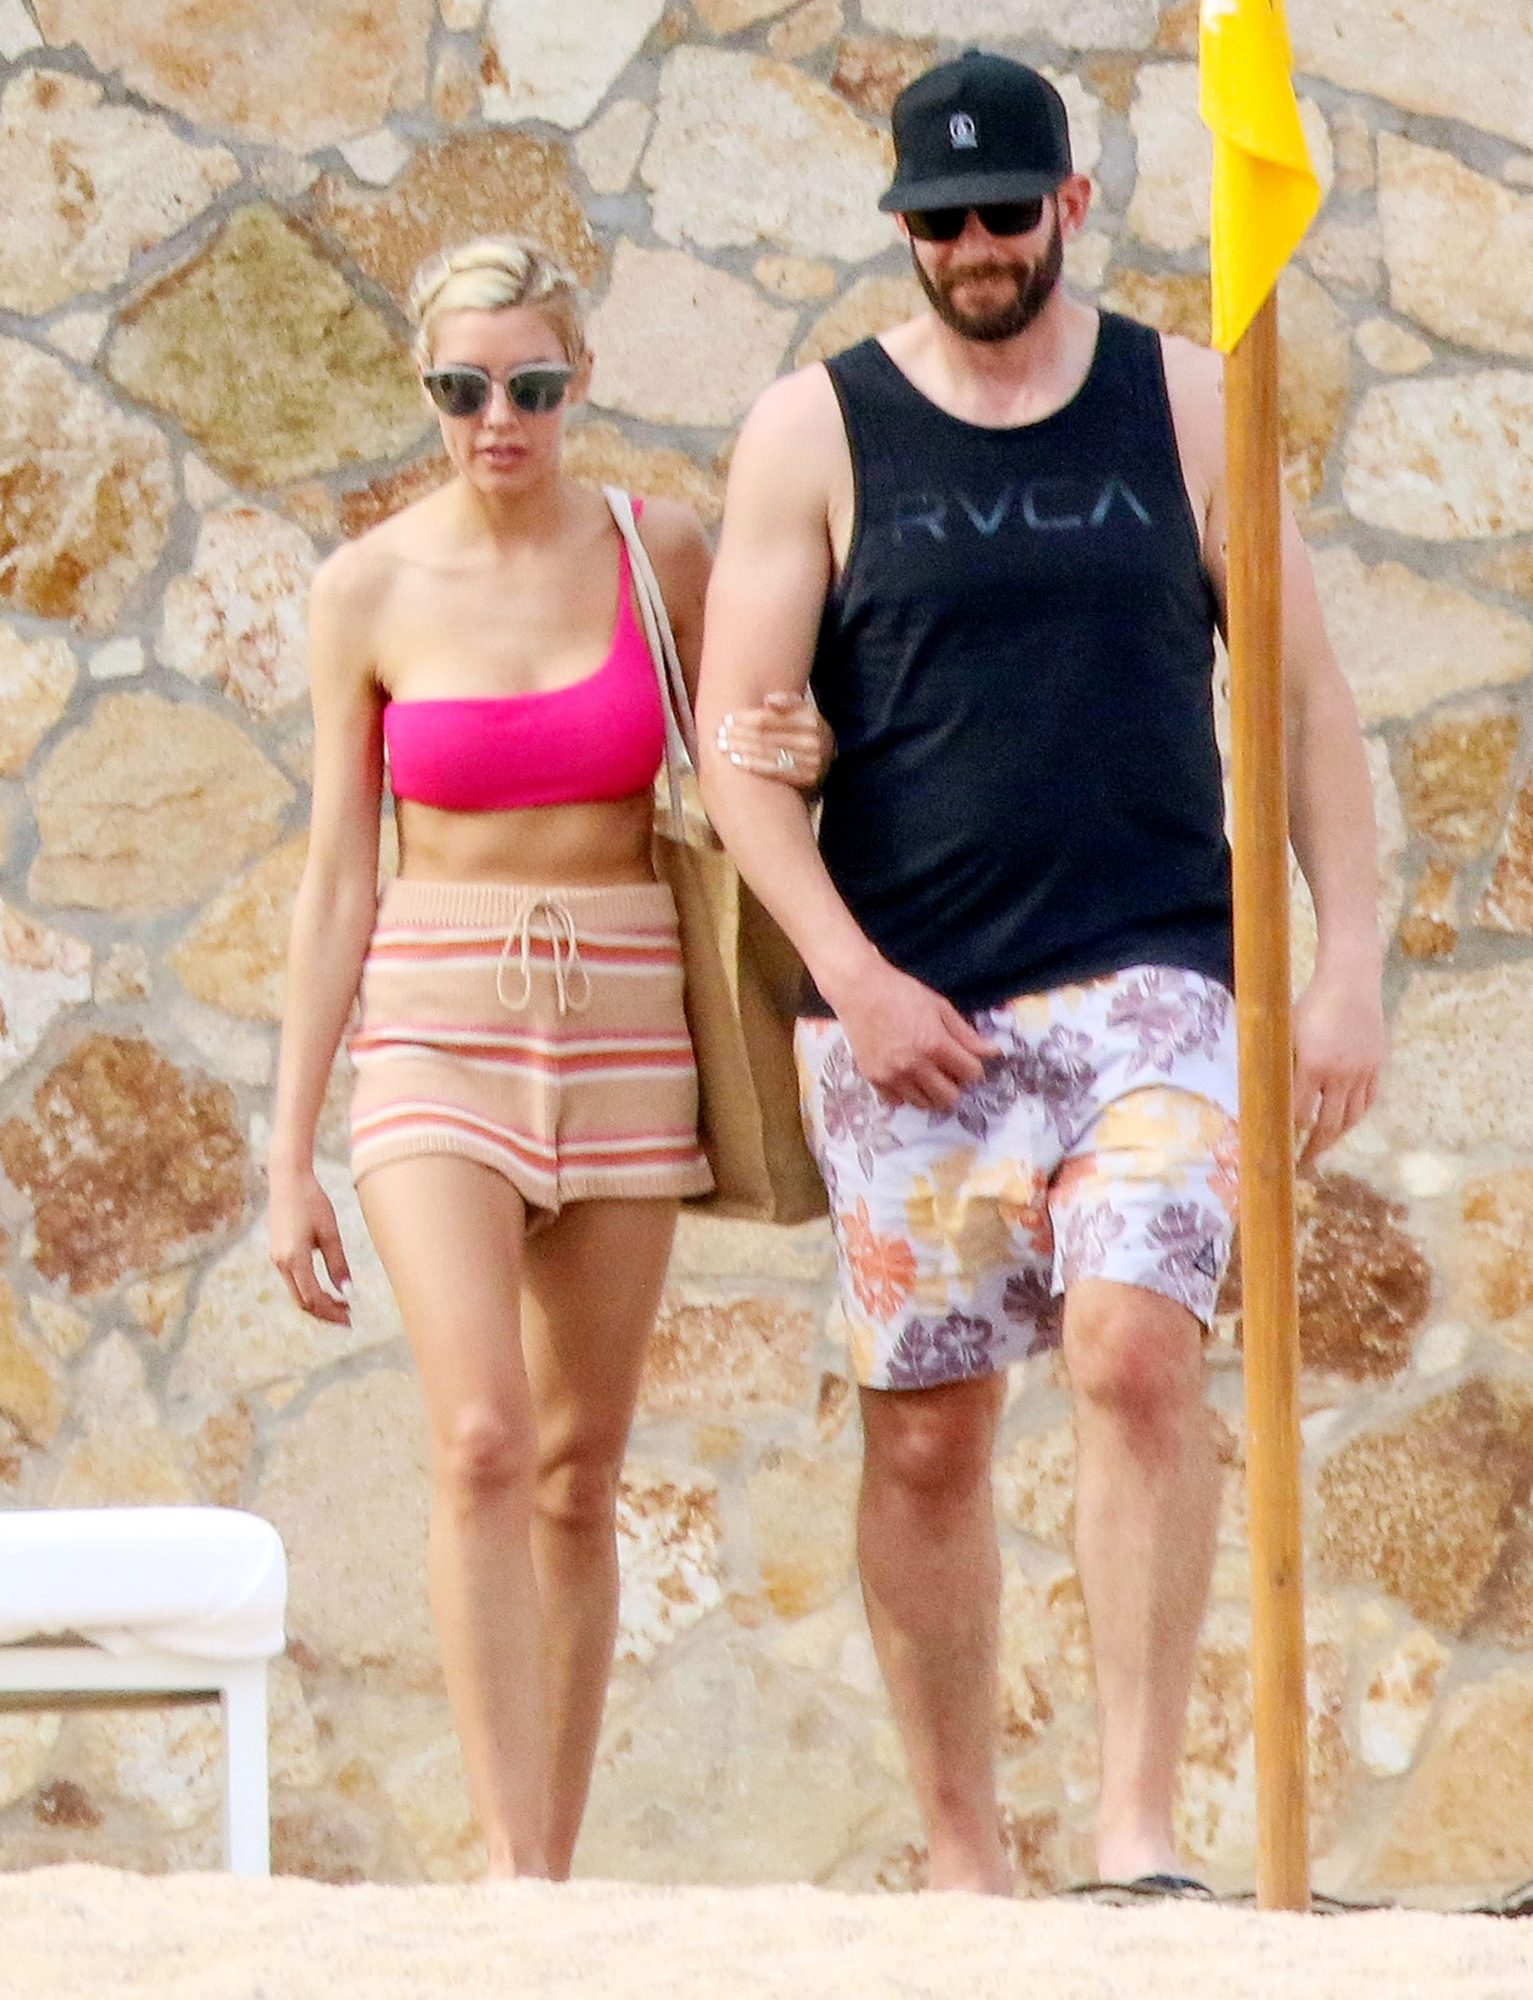 Flip Or Flop Star Tarek El Moussa And His Fiancee Heather Rae Young Hit The Beach As Romantic Trip To Mexico Continues